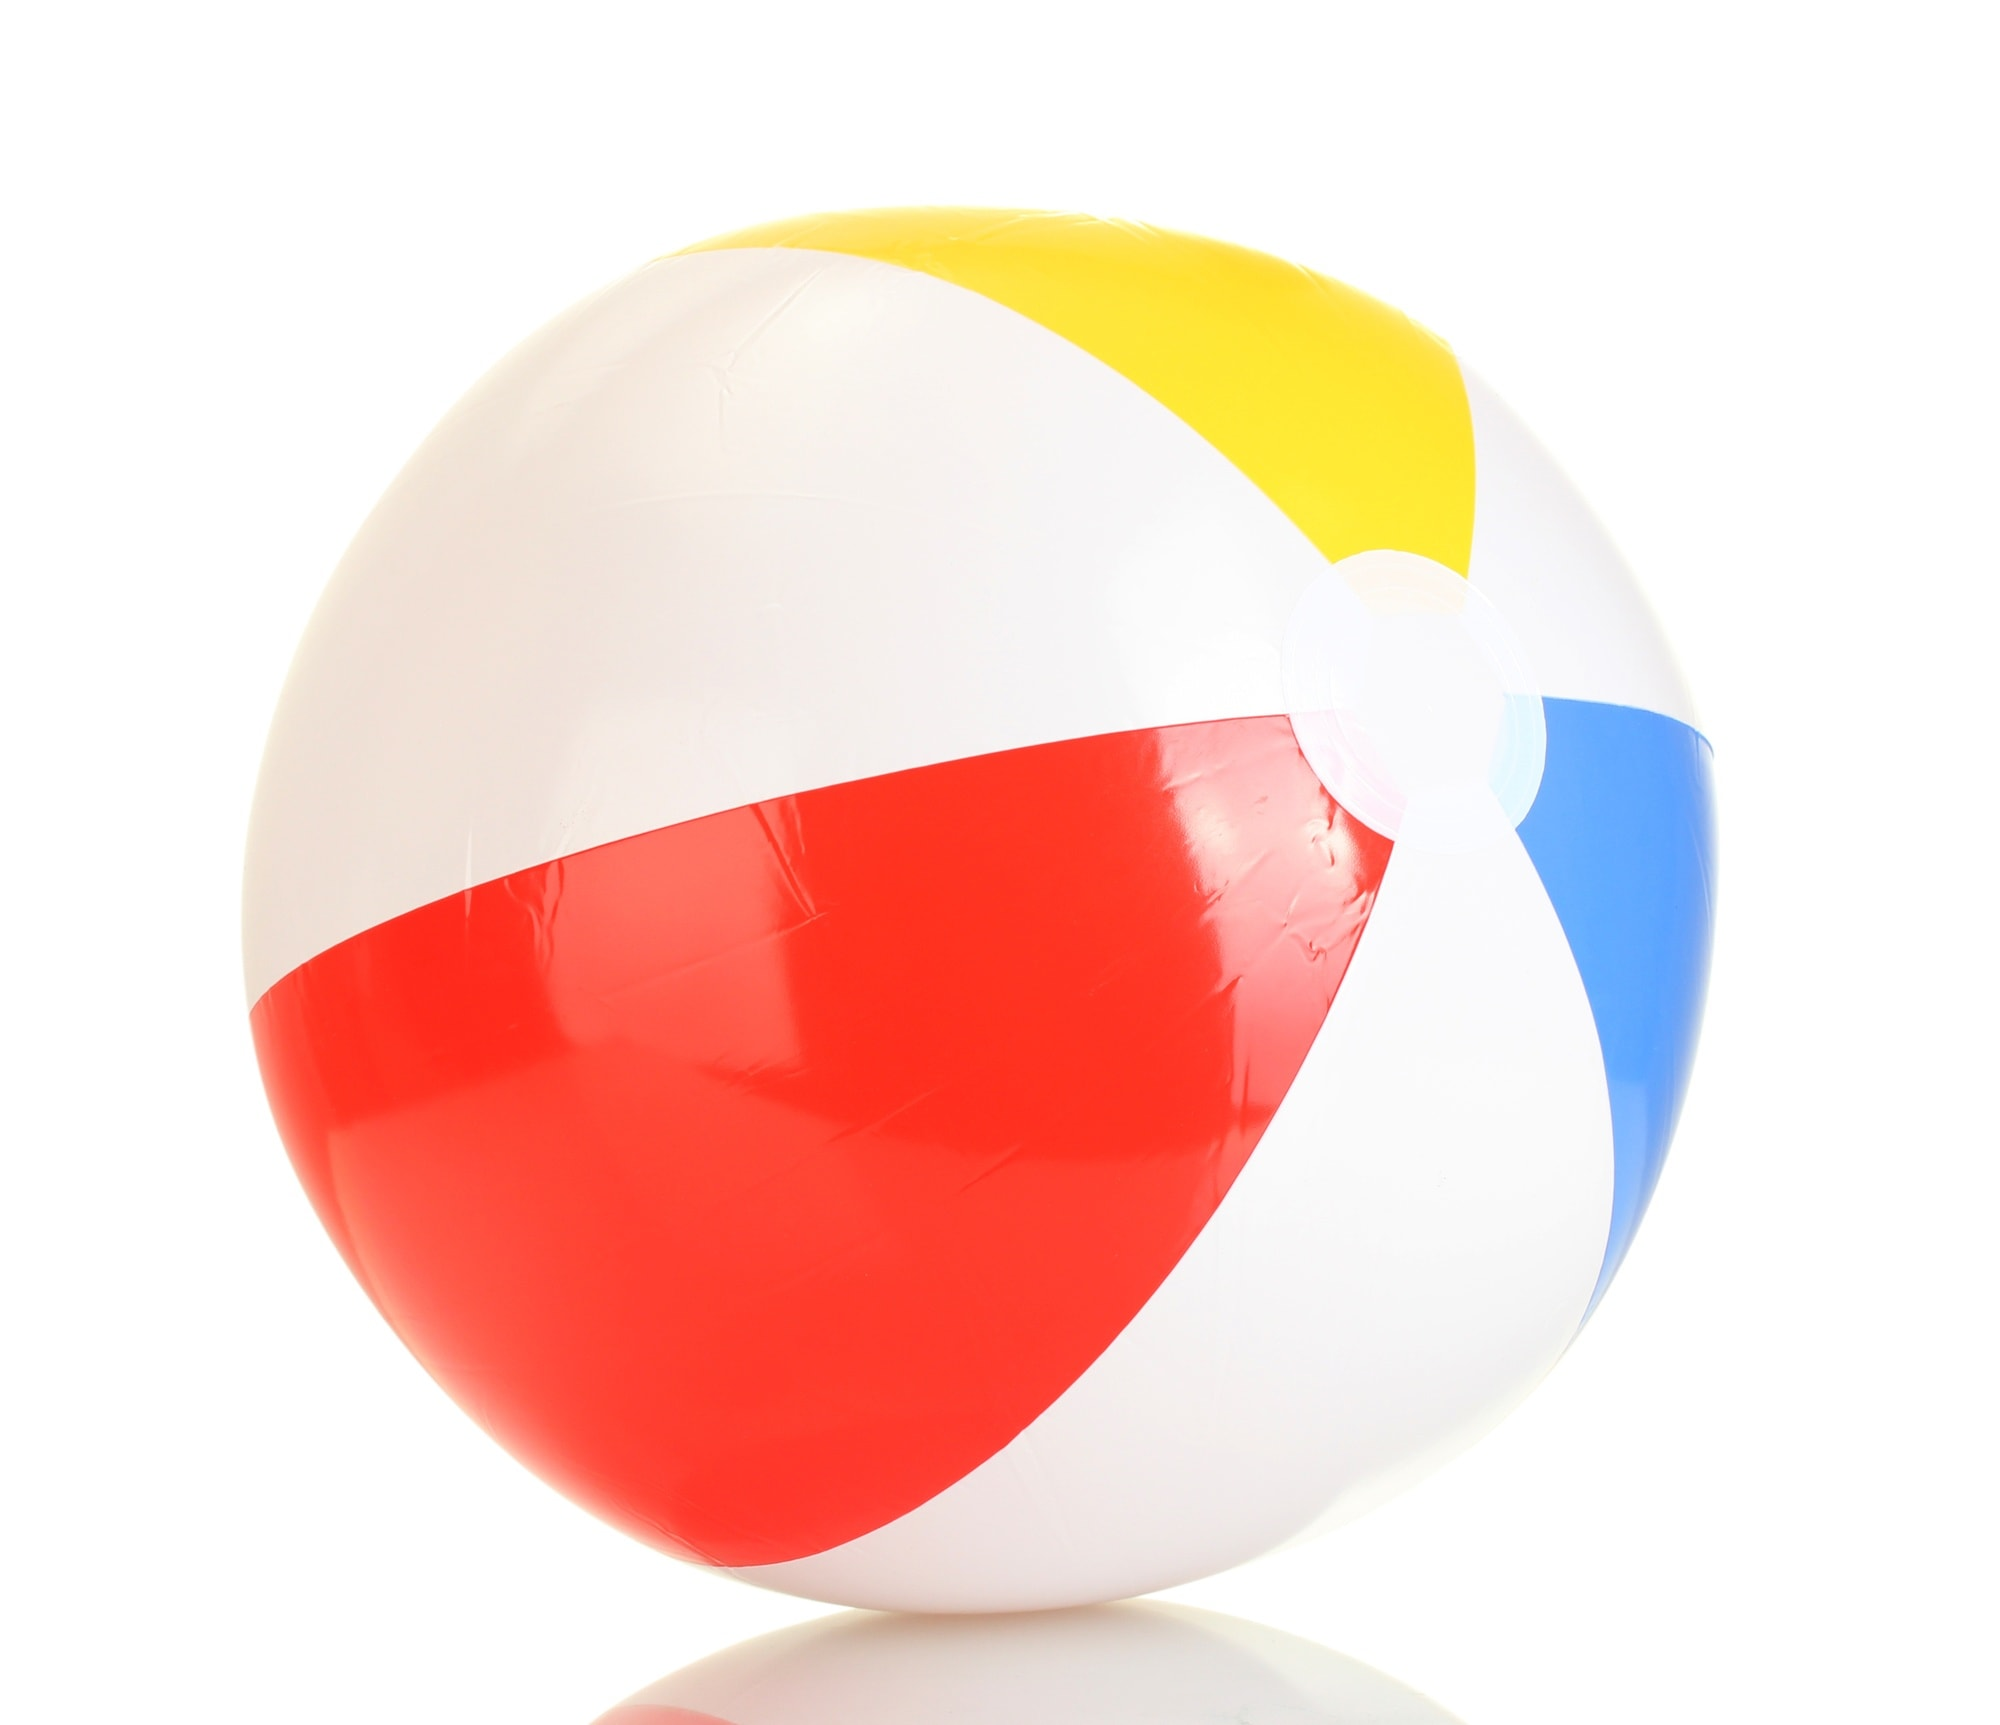 Pack a beach ball for pit stops and beach play on family vacation